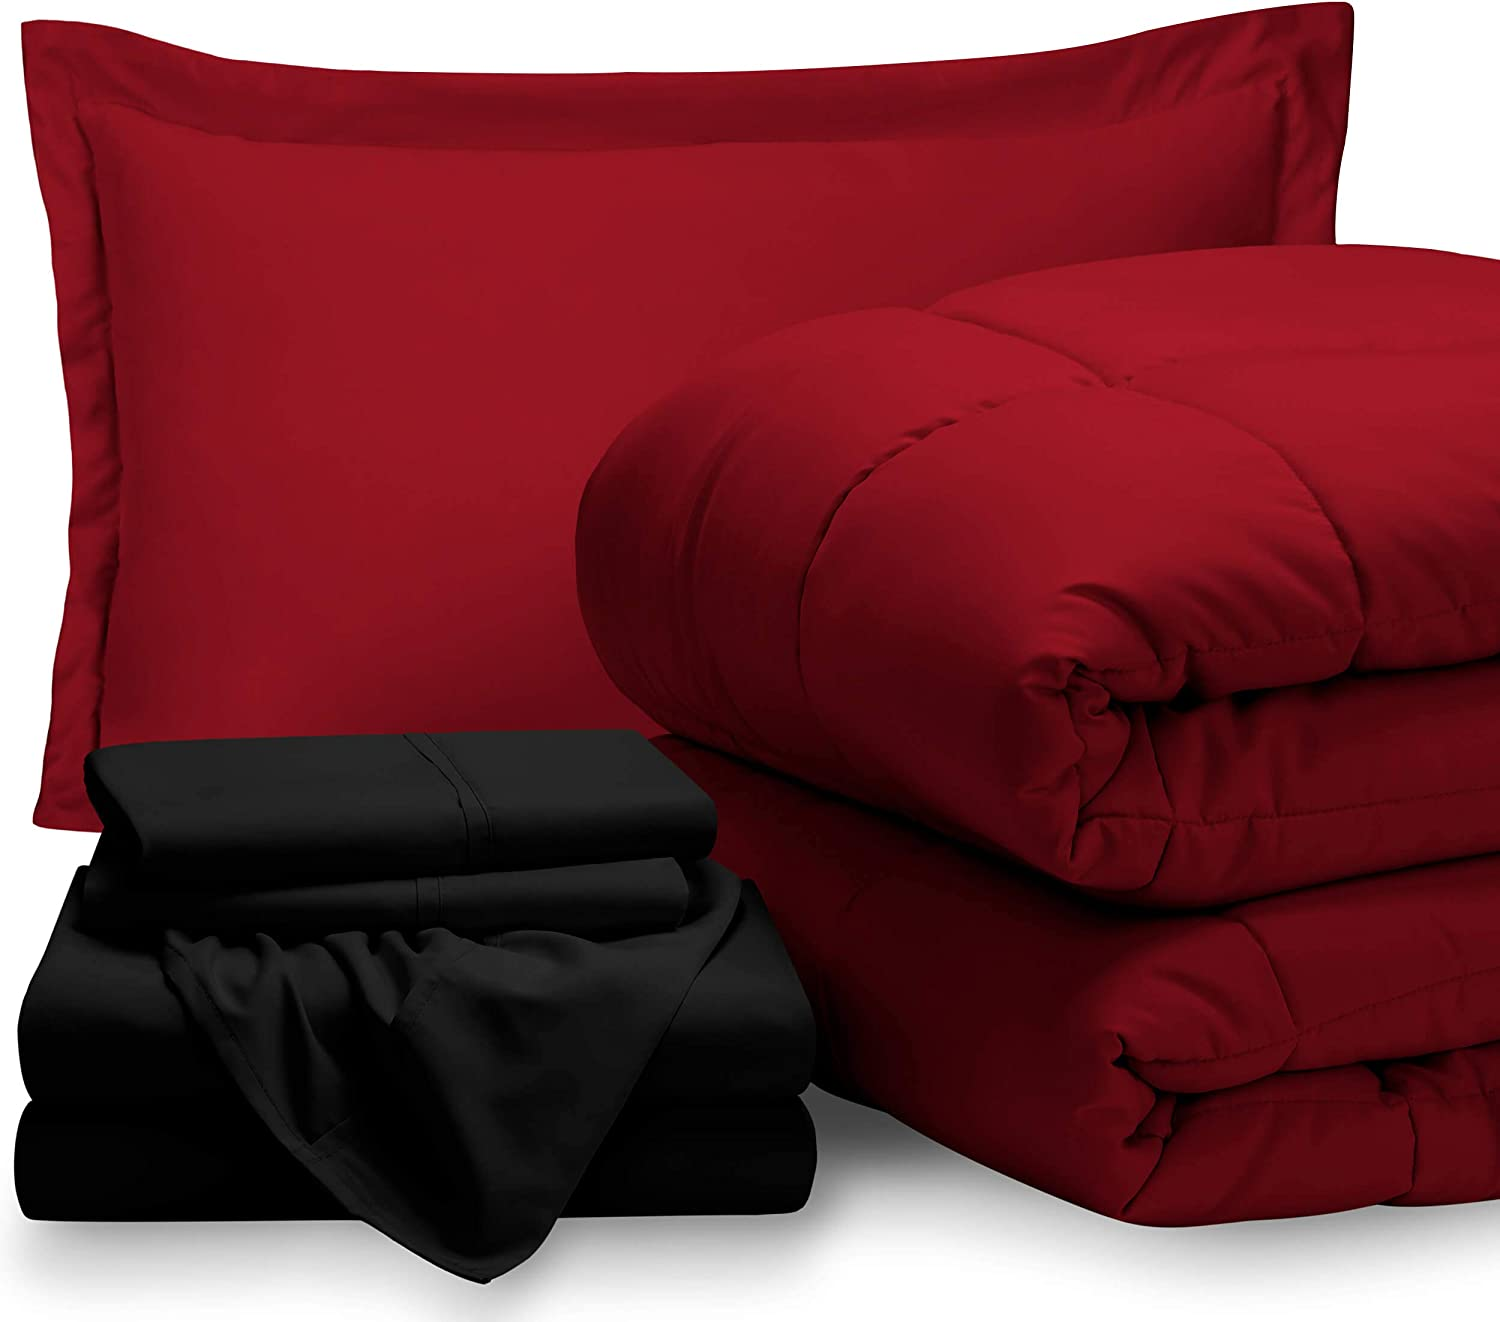 Bare Home Bed-in-A-Bag 5 Piece Comforter & Sheet Set - Twin Extra Long - Goose Down Alternative - Ultra-Soft 1800 Premium - Hypoallergenic - Breathable Bedding Set (Twin XL, Red/Black)